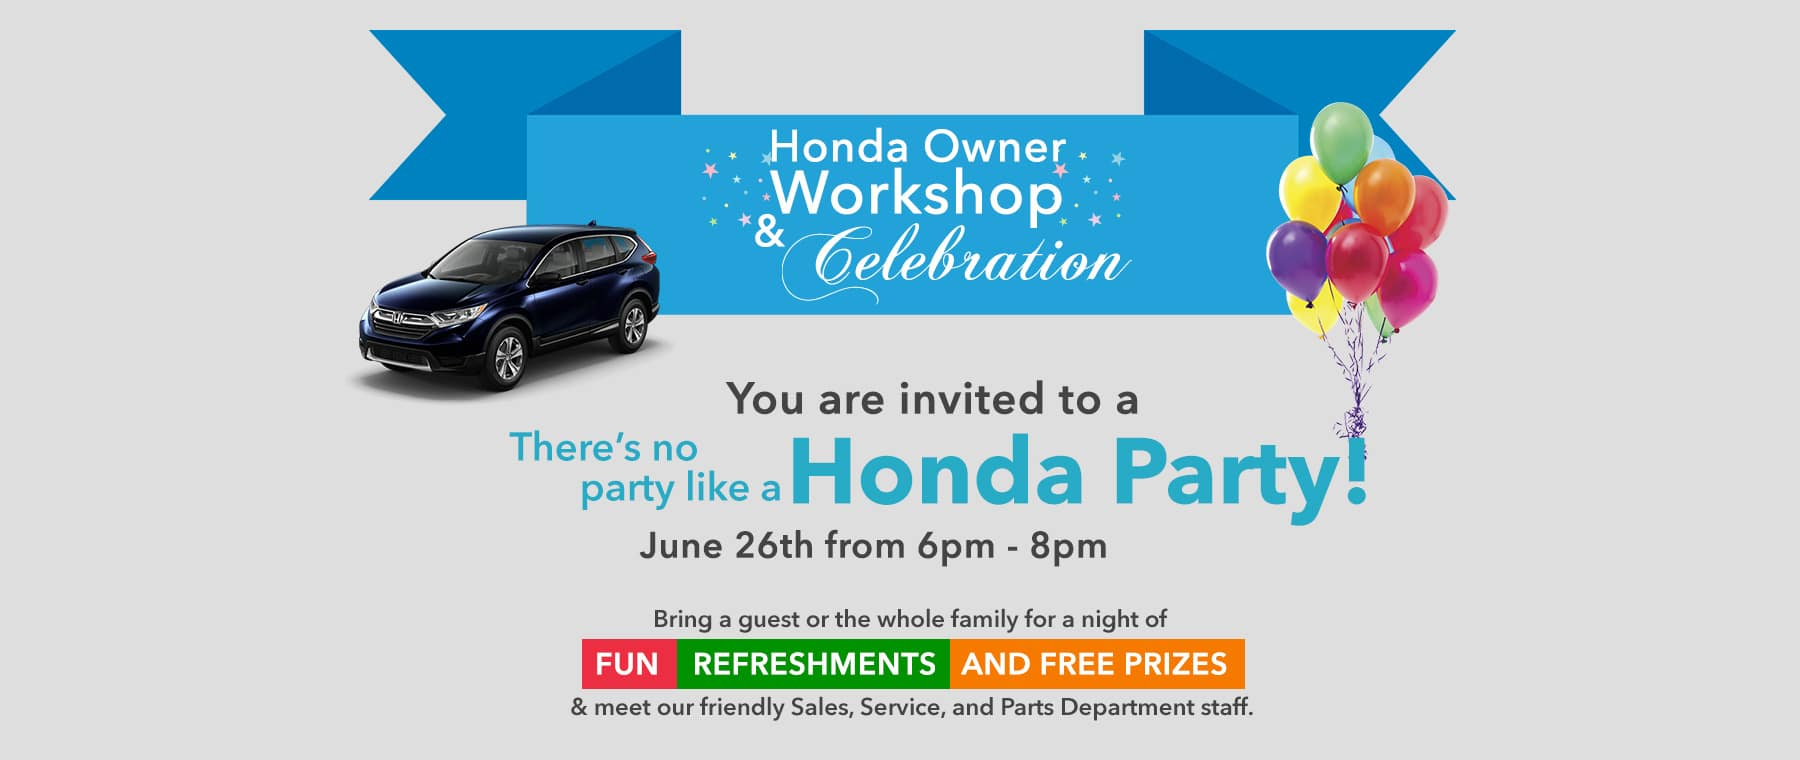 Join Us For Our Honda Owners Workshop